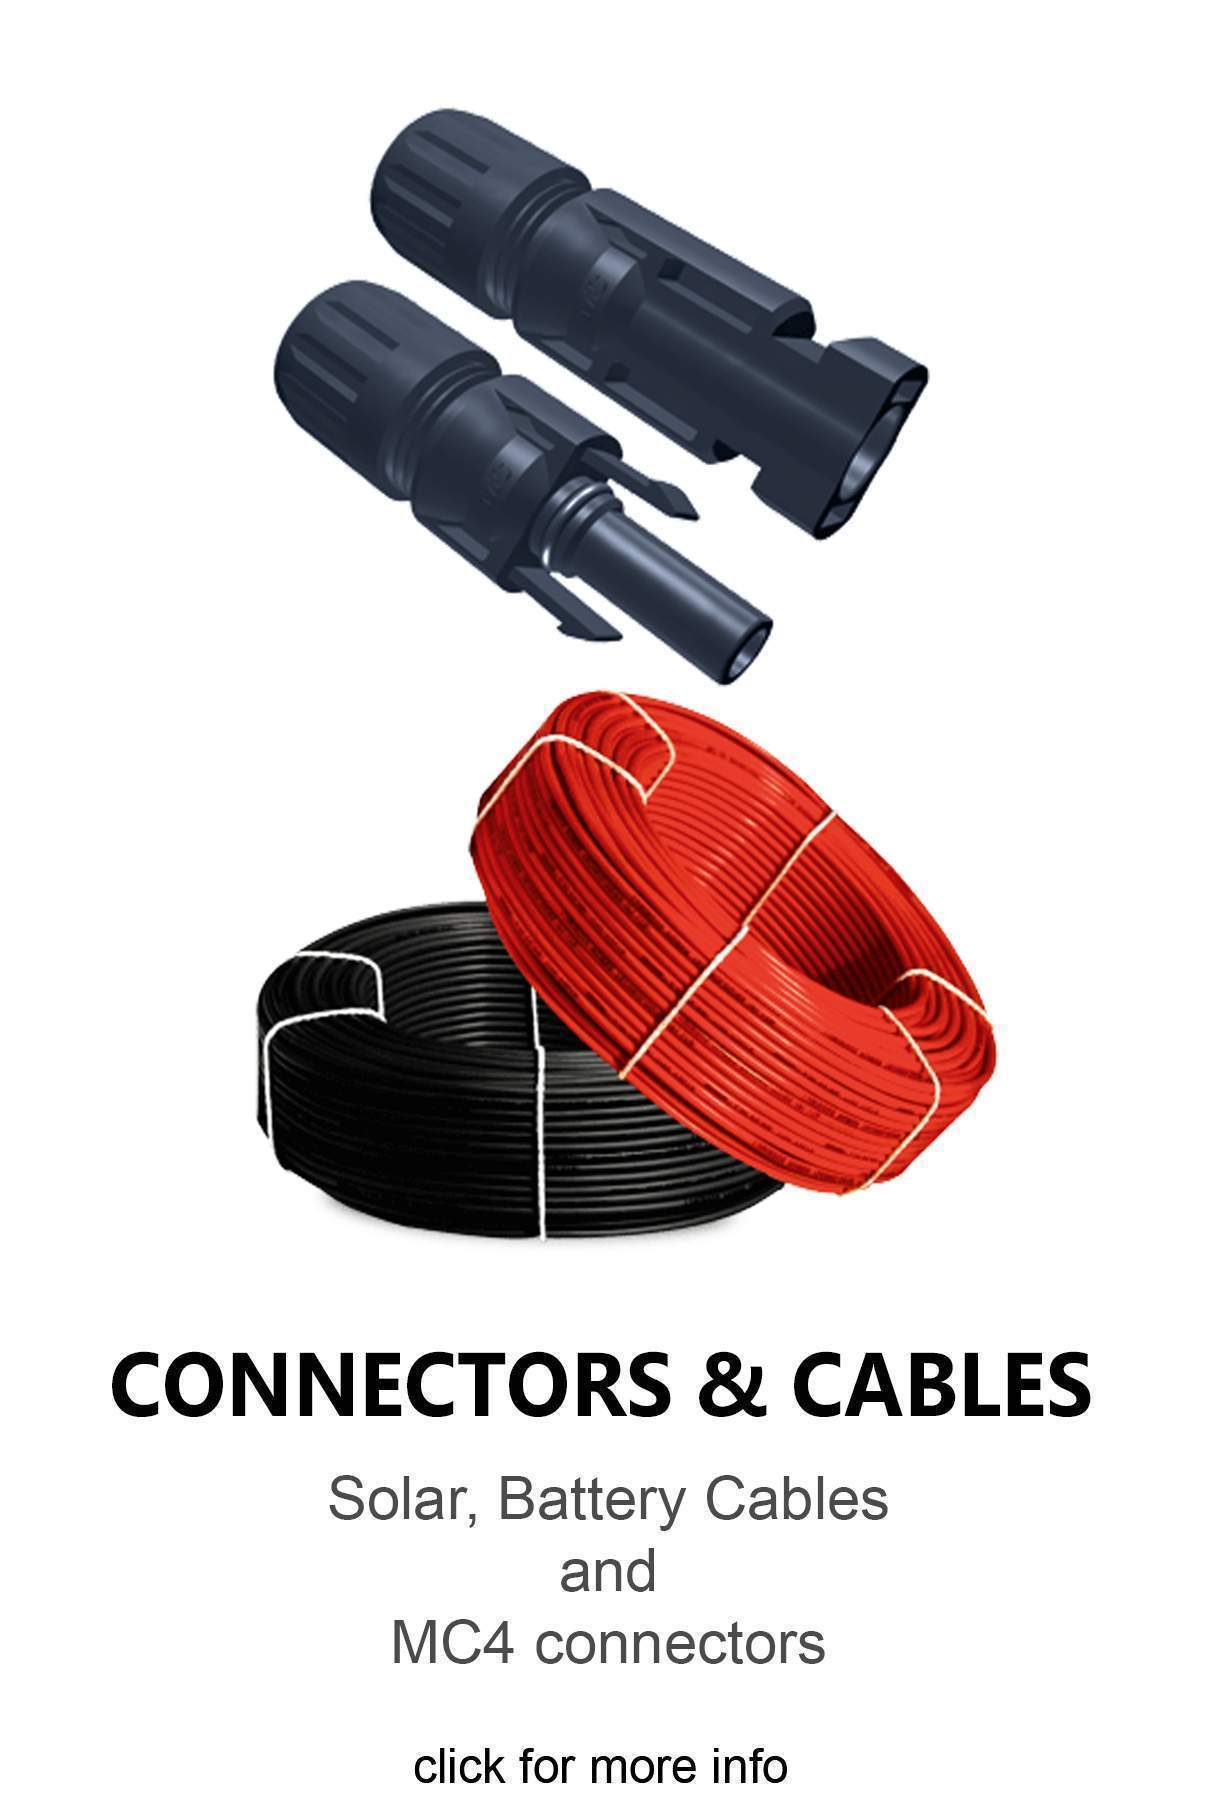 mc4 connectors, solar wire, battery cables Pretoria